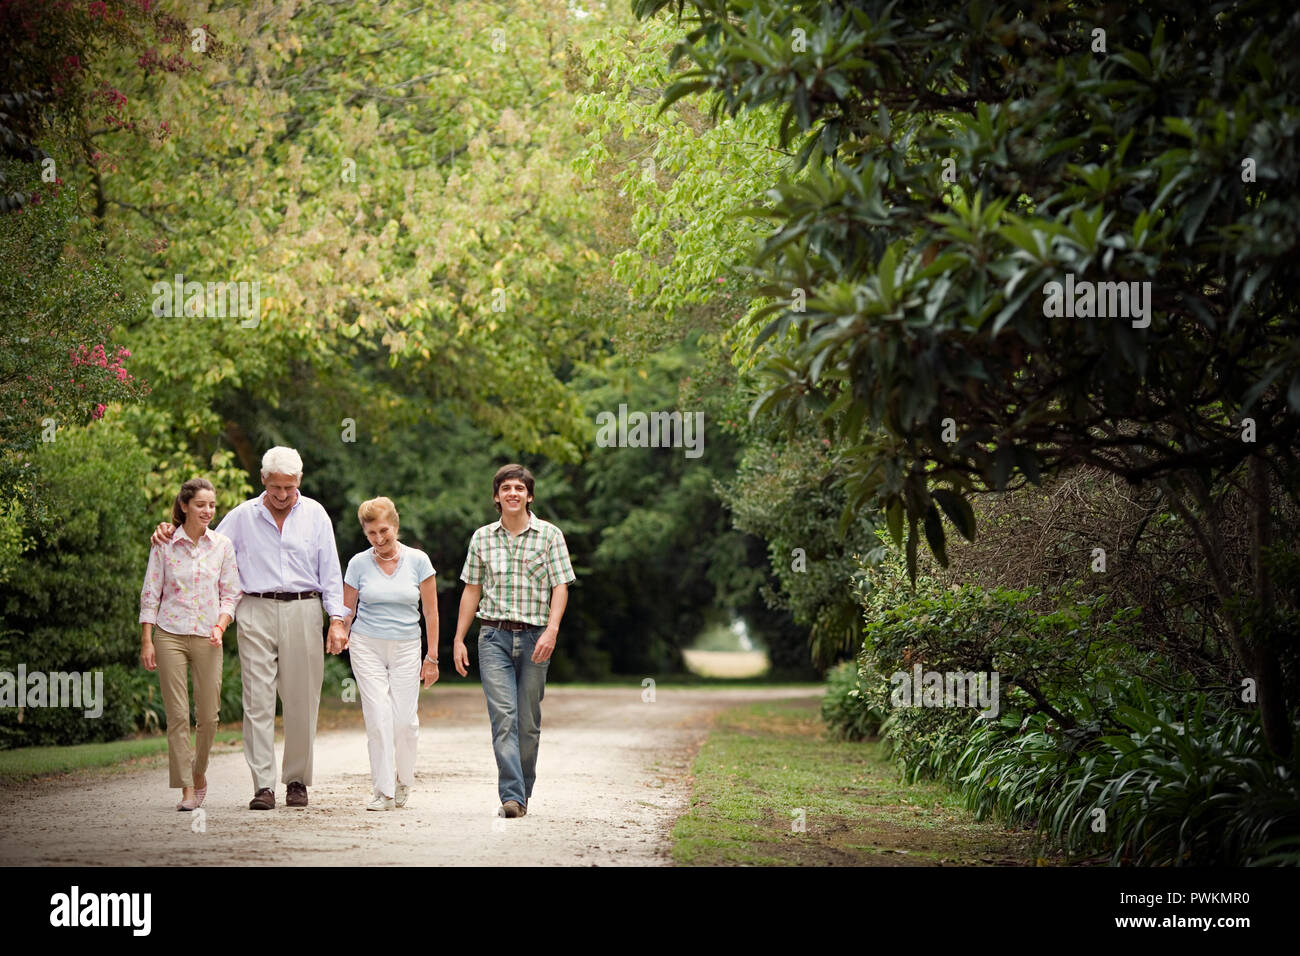 View of a family taking a leisurely walk. - Stock Image